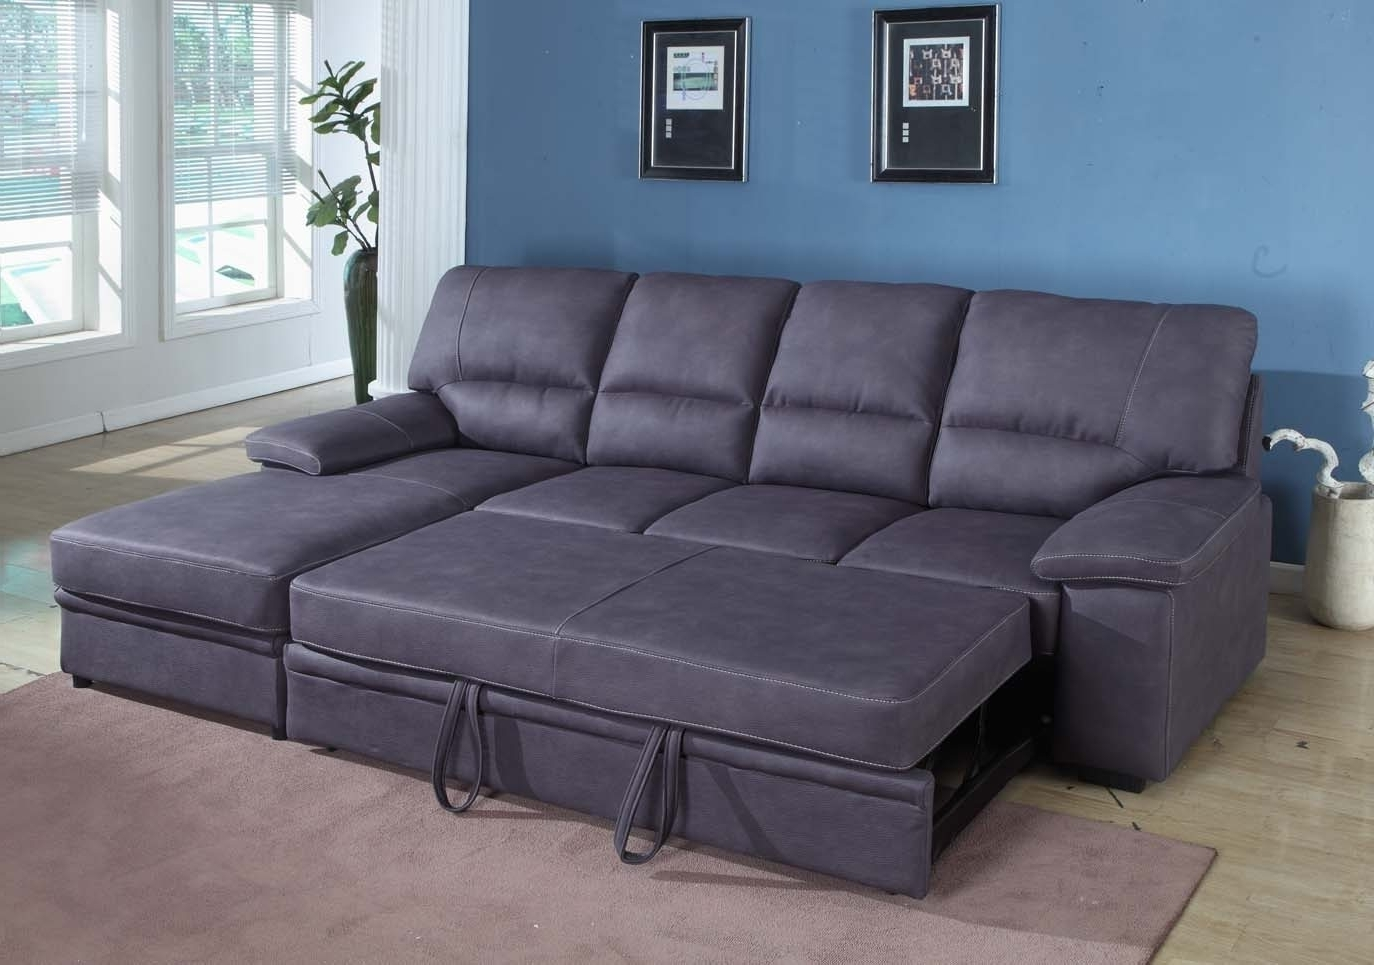 Recent Sectional Sofas That Turn Into Beds Throughout Sofa : Double Size Sleeper Sofa Cheap Pull Out Couch Bed Pull Out (View 8 of 20)